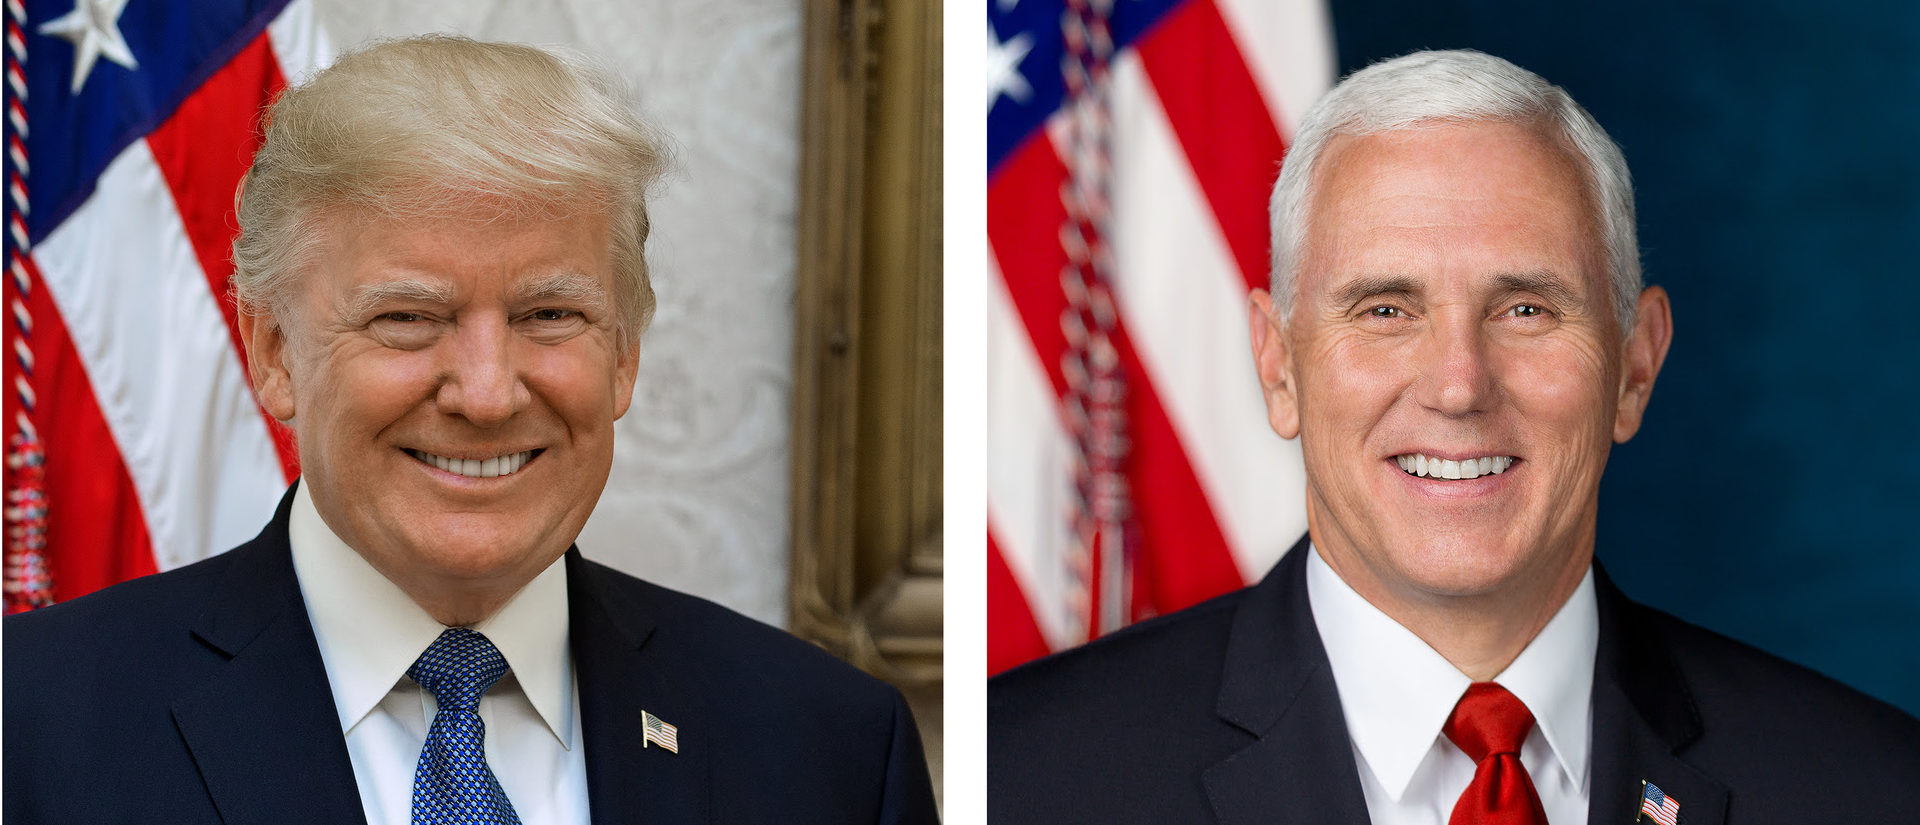 The White House Released the official portraits of President Donald Trump and Vice President Mike Pence. (Photo: White House/Released)